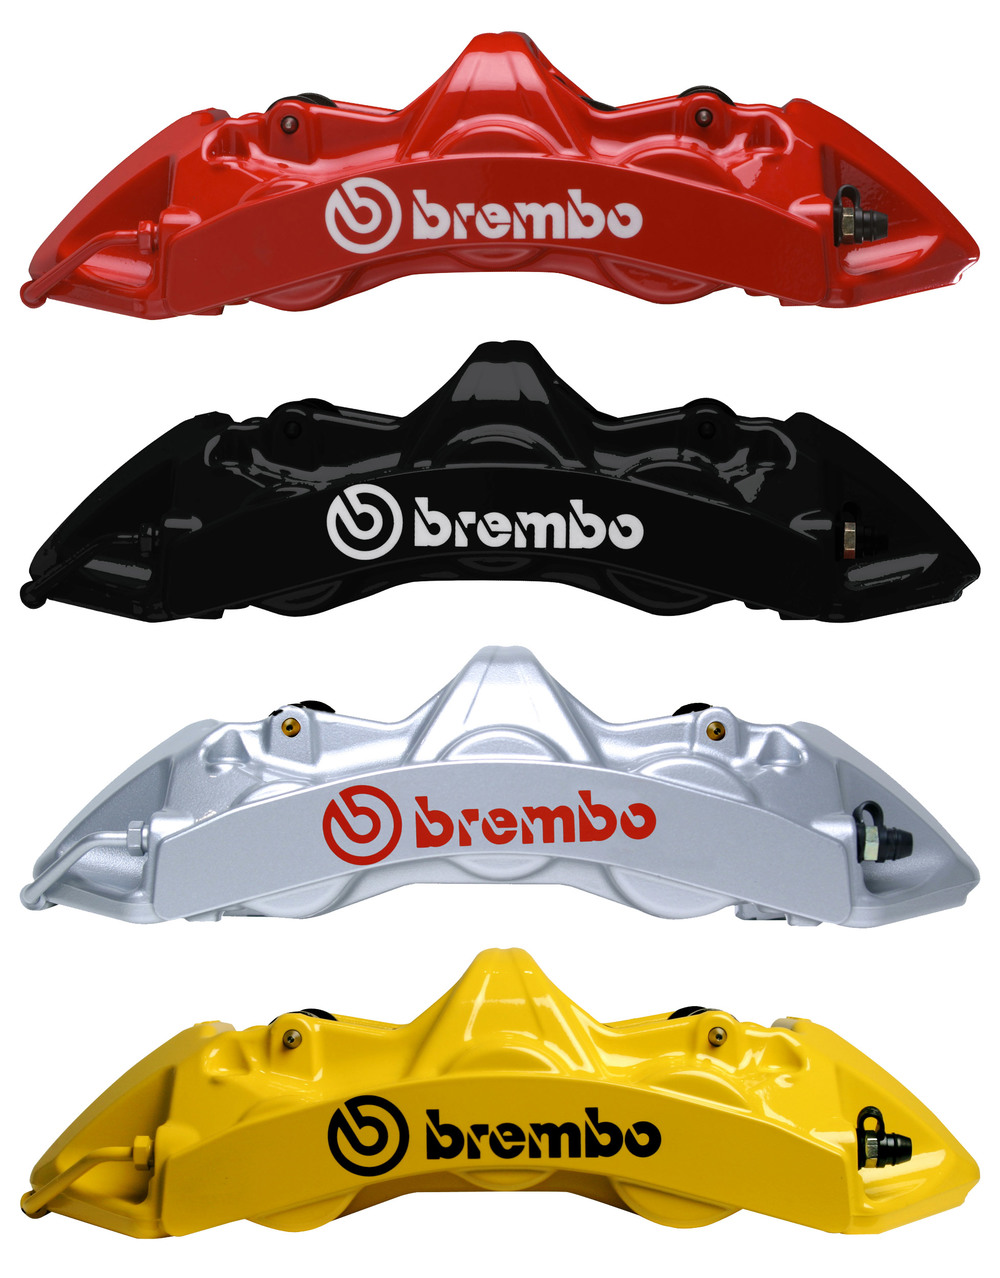 Brembo_Colors.jpg